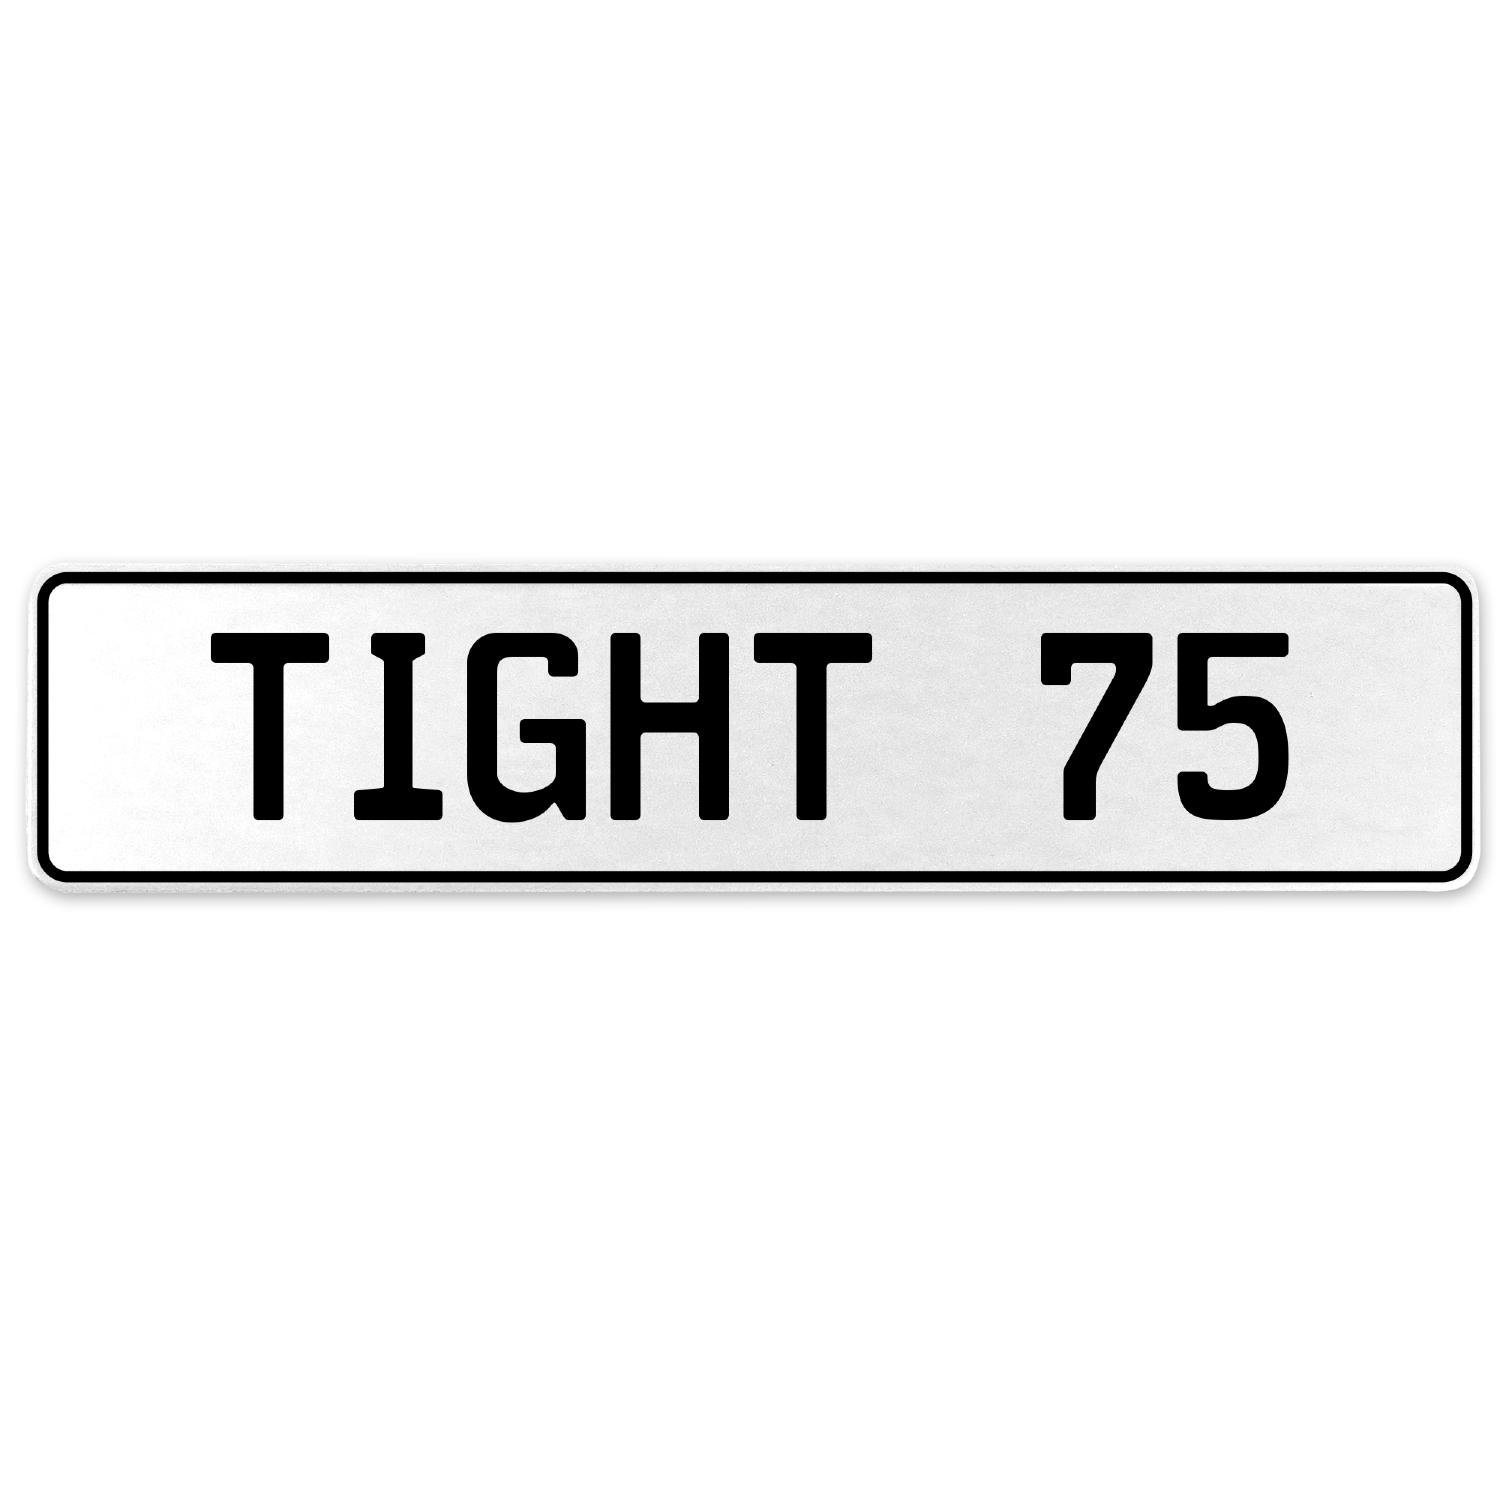 Vintage Parts 554771 Tight 75 White Stamped Aluminum European License Plate